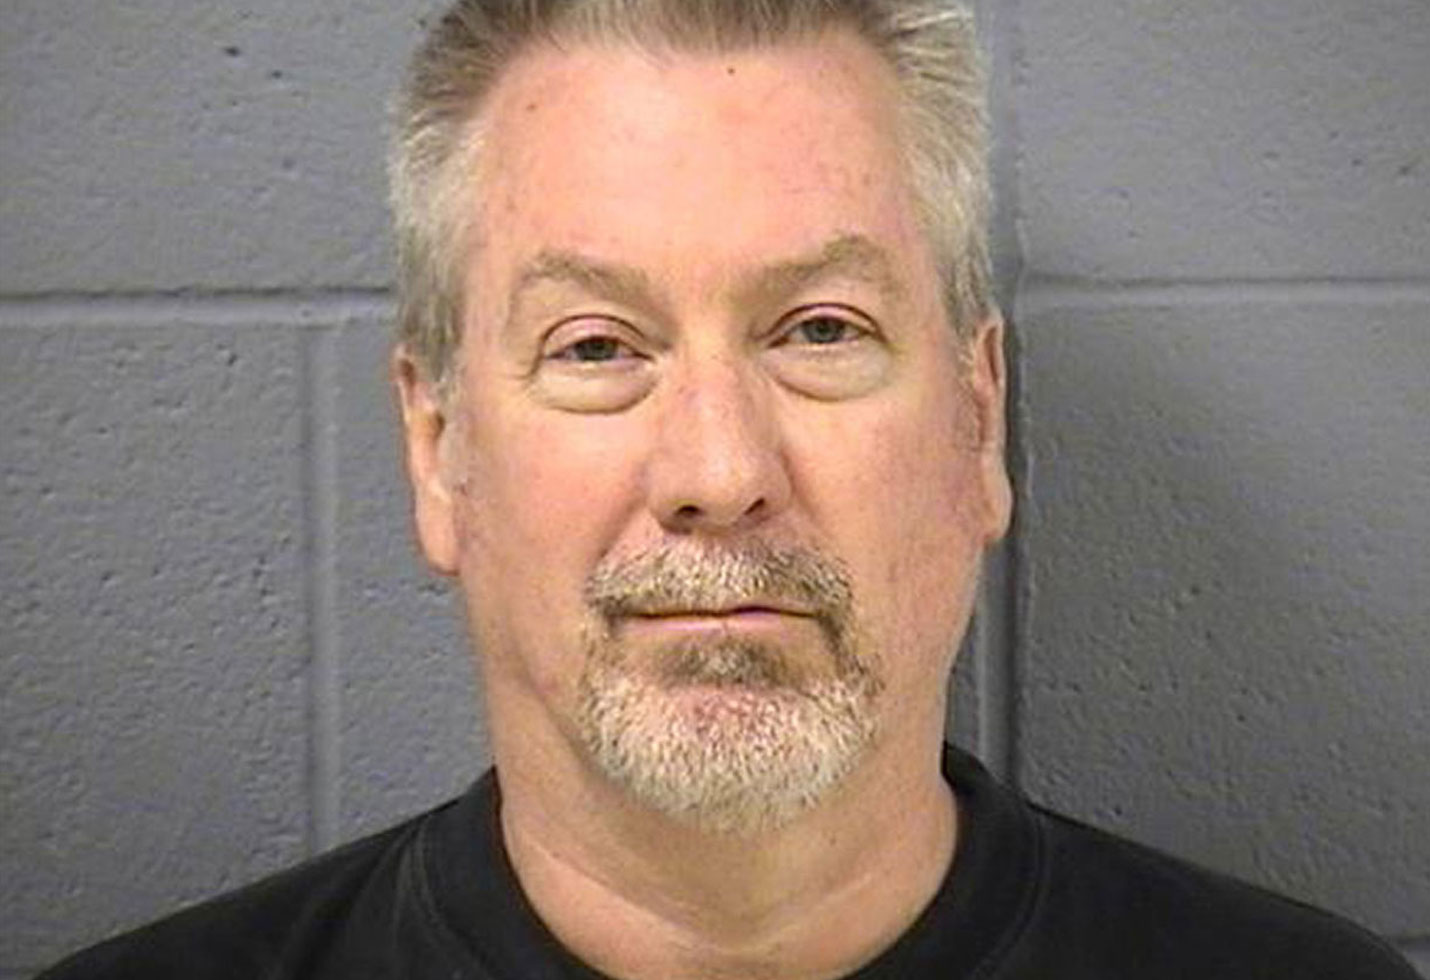 Drew peterson documentary wife murder subjects pp str